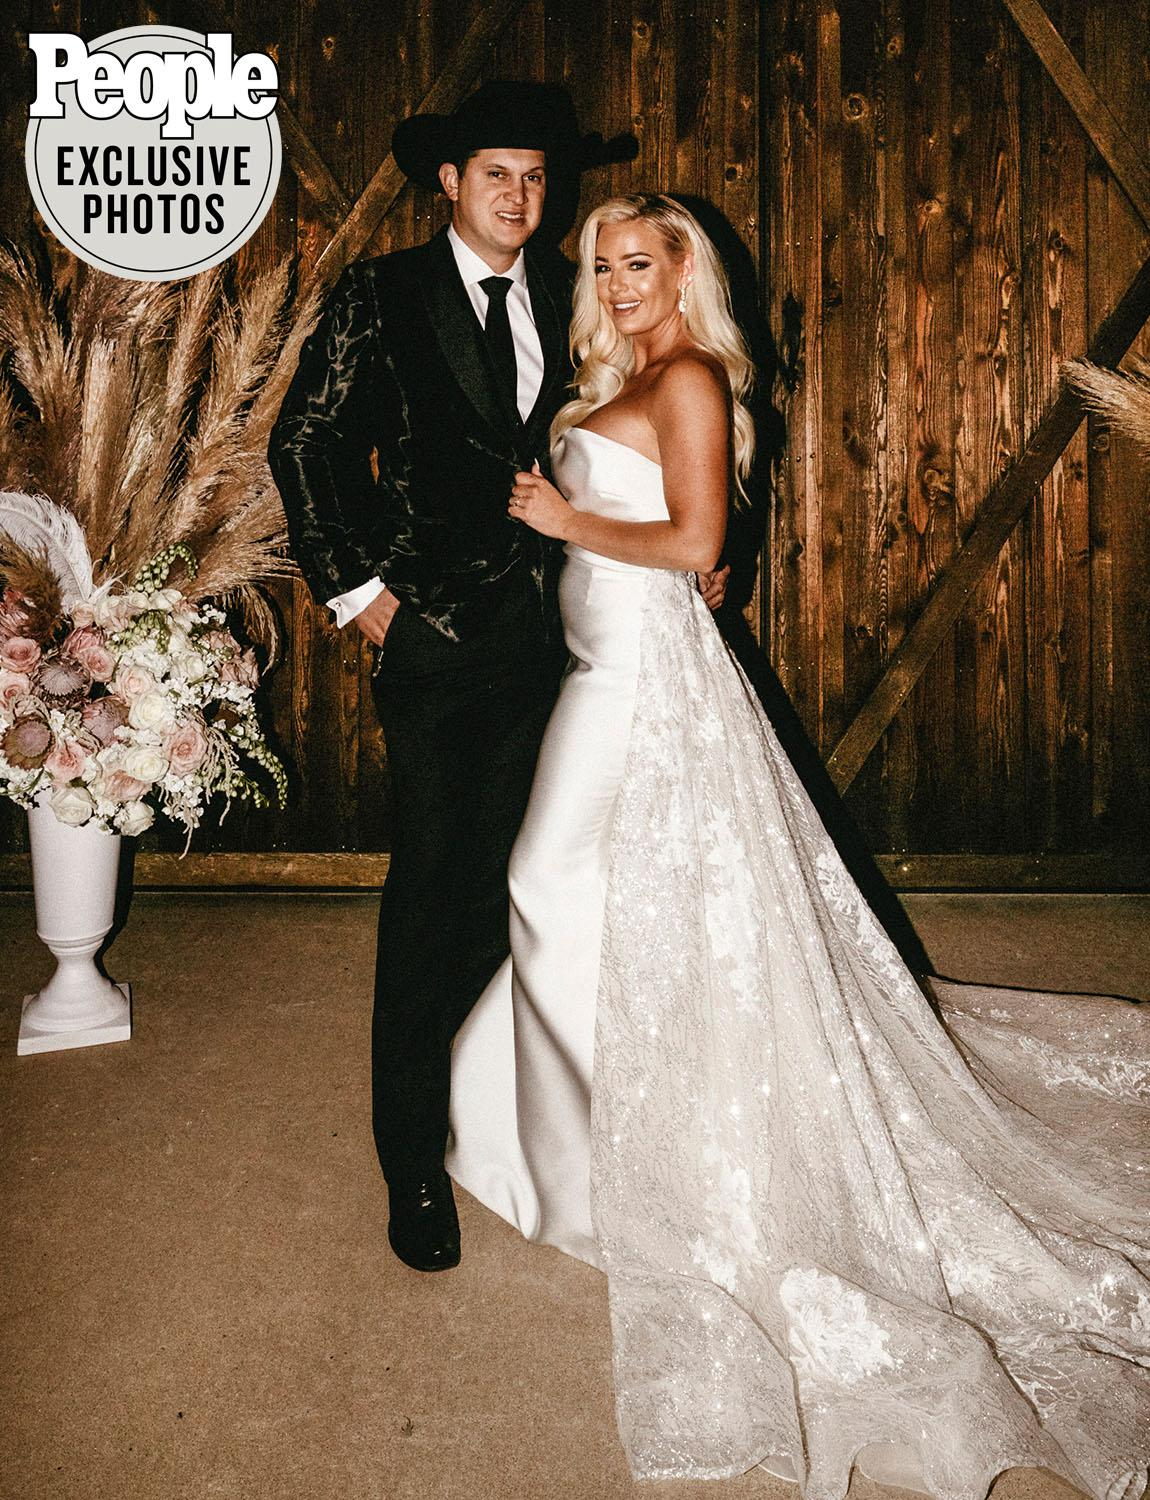 Inside Jon Pardi And Summer Duncan S Rustic Fall Farm Wedding In Tennessee All The Photos